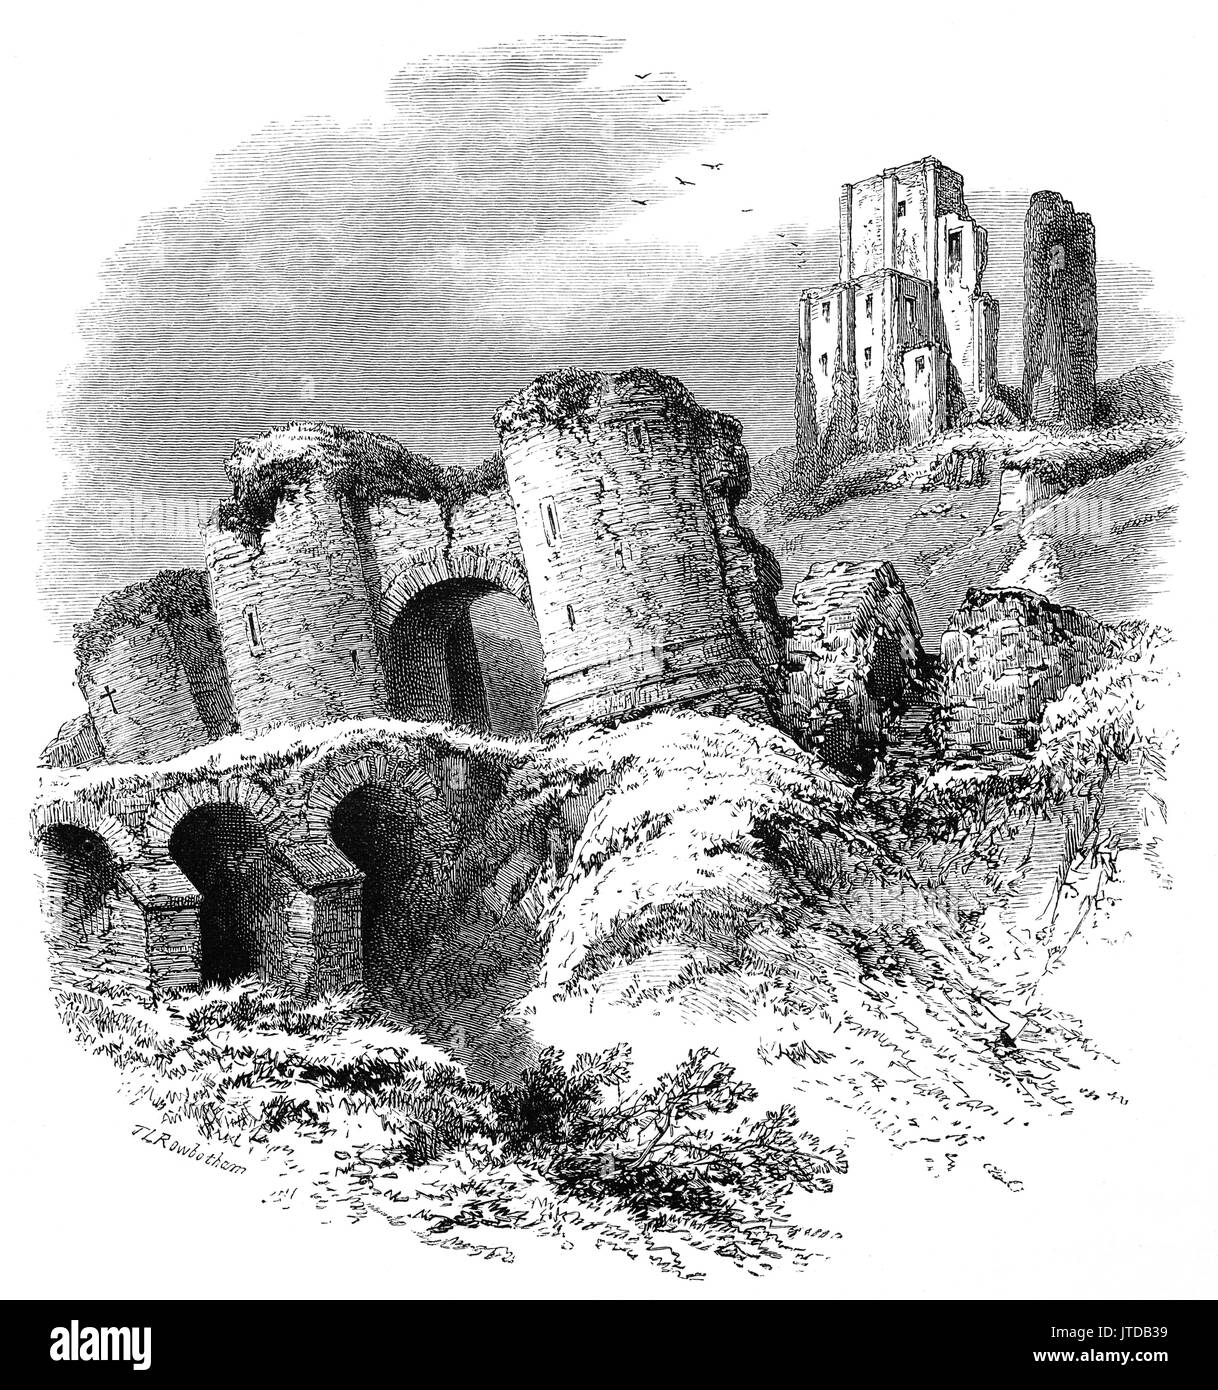 1870: The 10th Century ruins of Corfe Castle that stands above the village of the same name.  It was the site of the murder of Edward the Martyr in 978. During the English Civil War it was a Royalist stronghold and was besieged twice, in 1643 and again in 1646. Dorsetshire, England - Stock Image